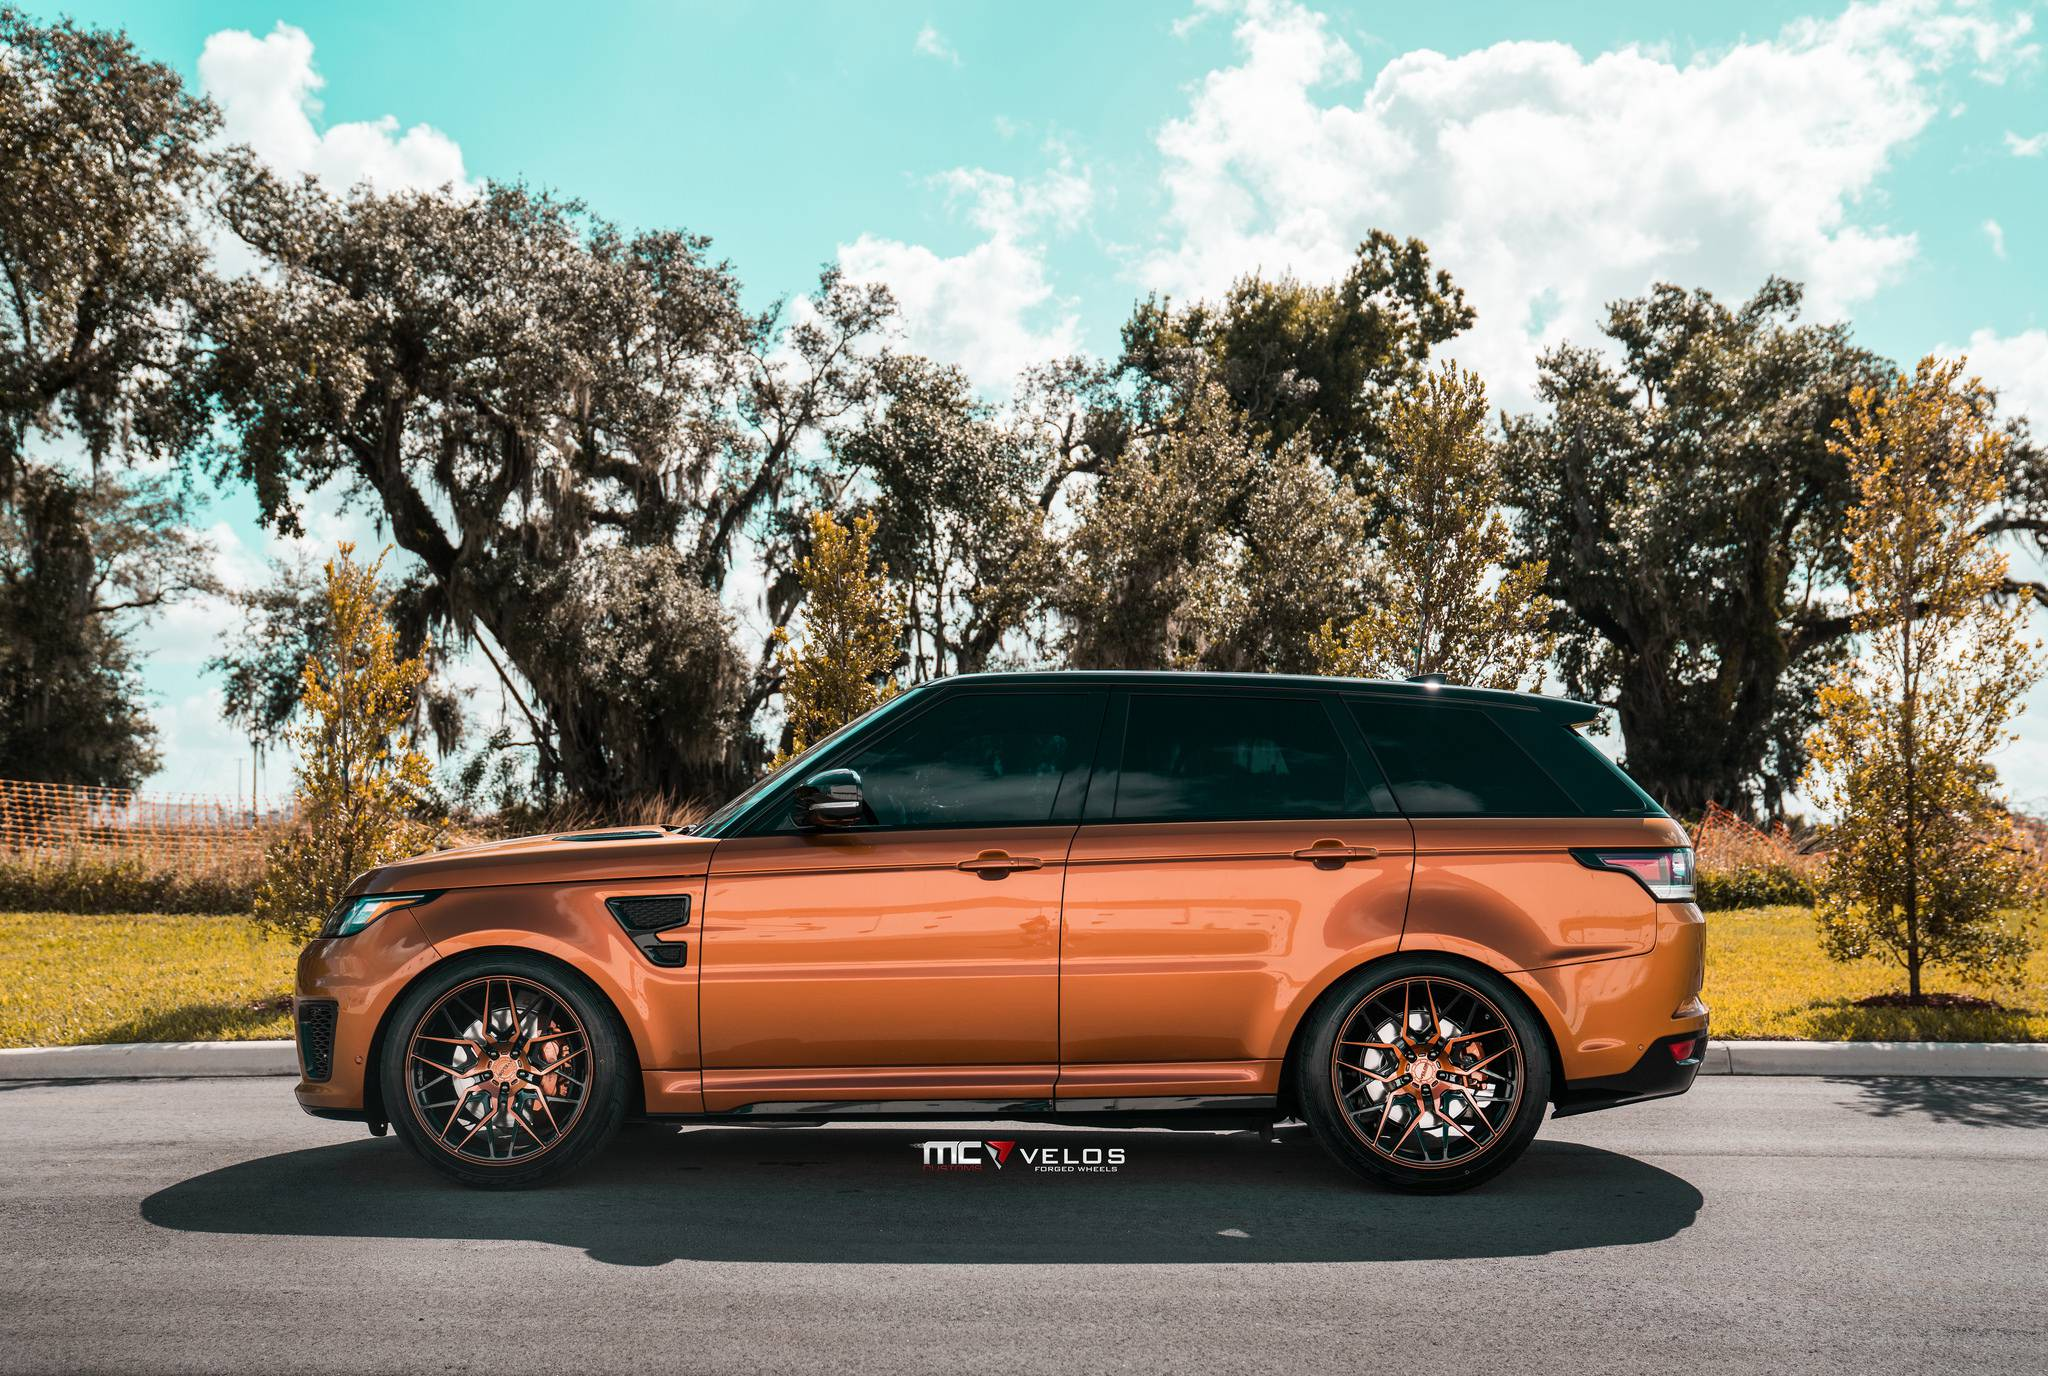 Range Rover Sport side view photo